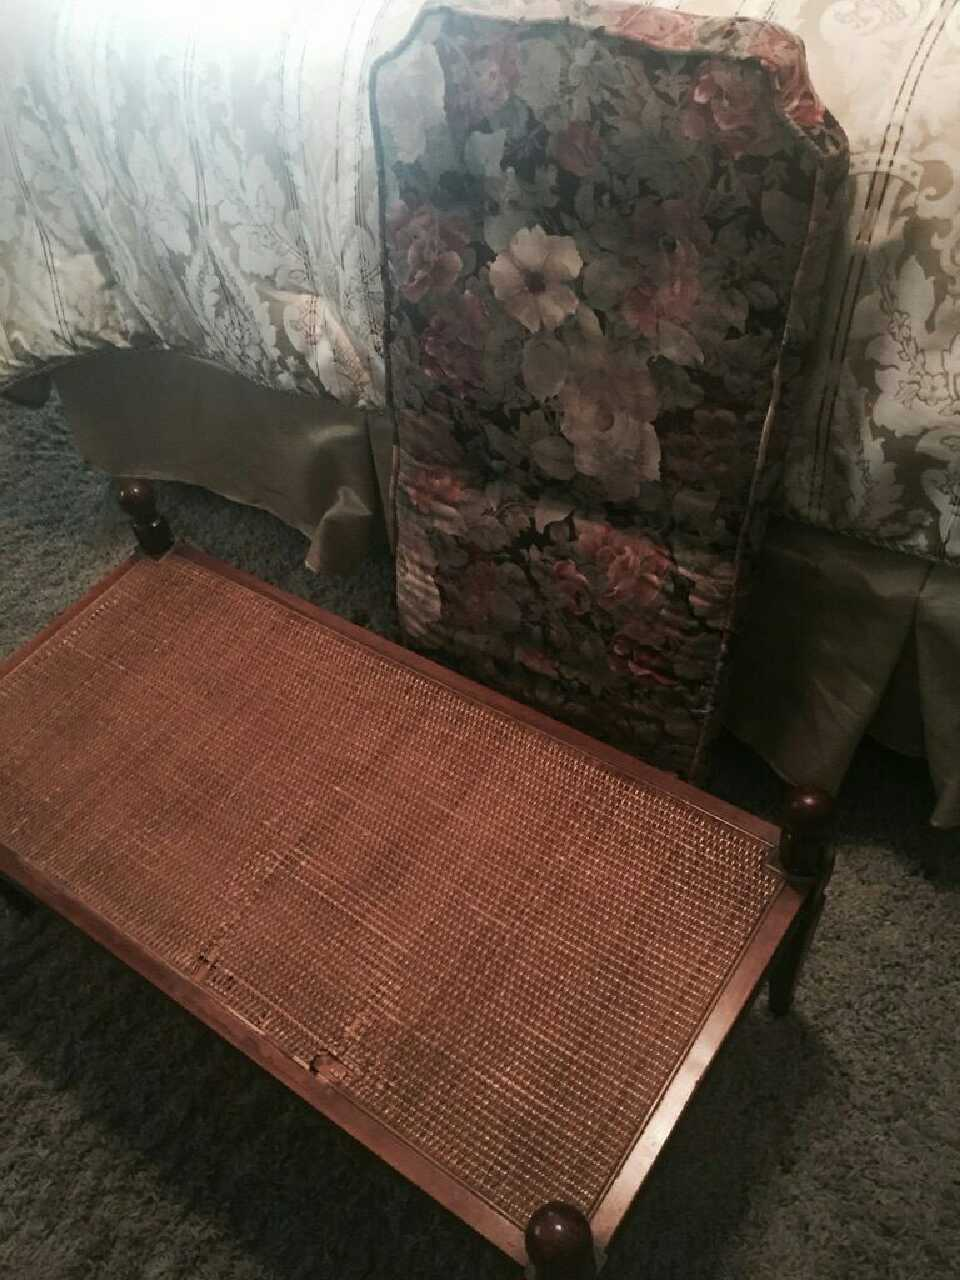 letgo - Matching bedroom set in Las Vegas, NV